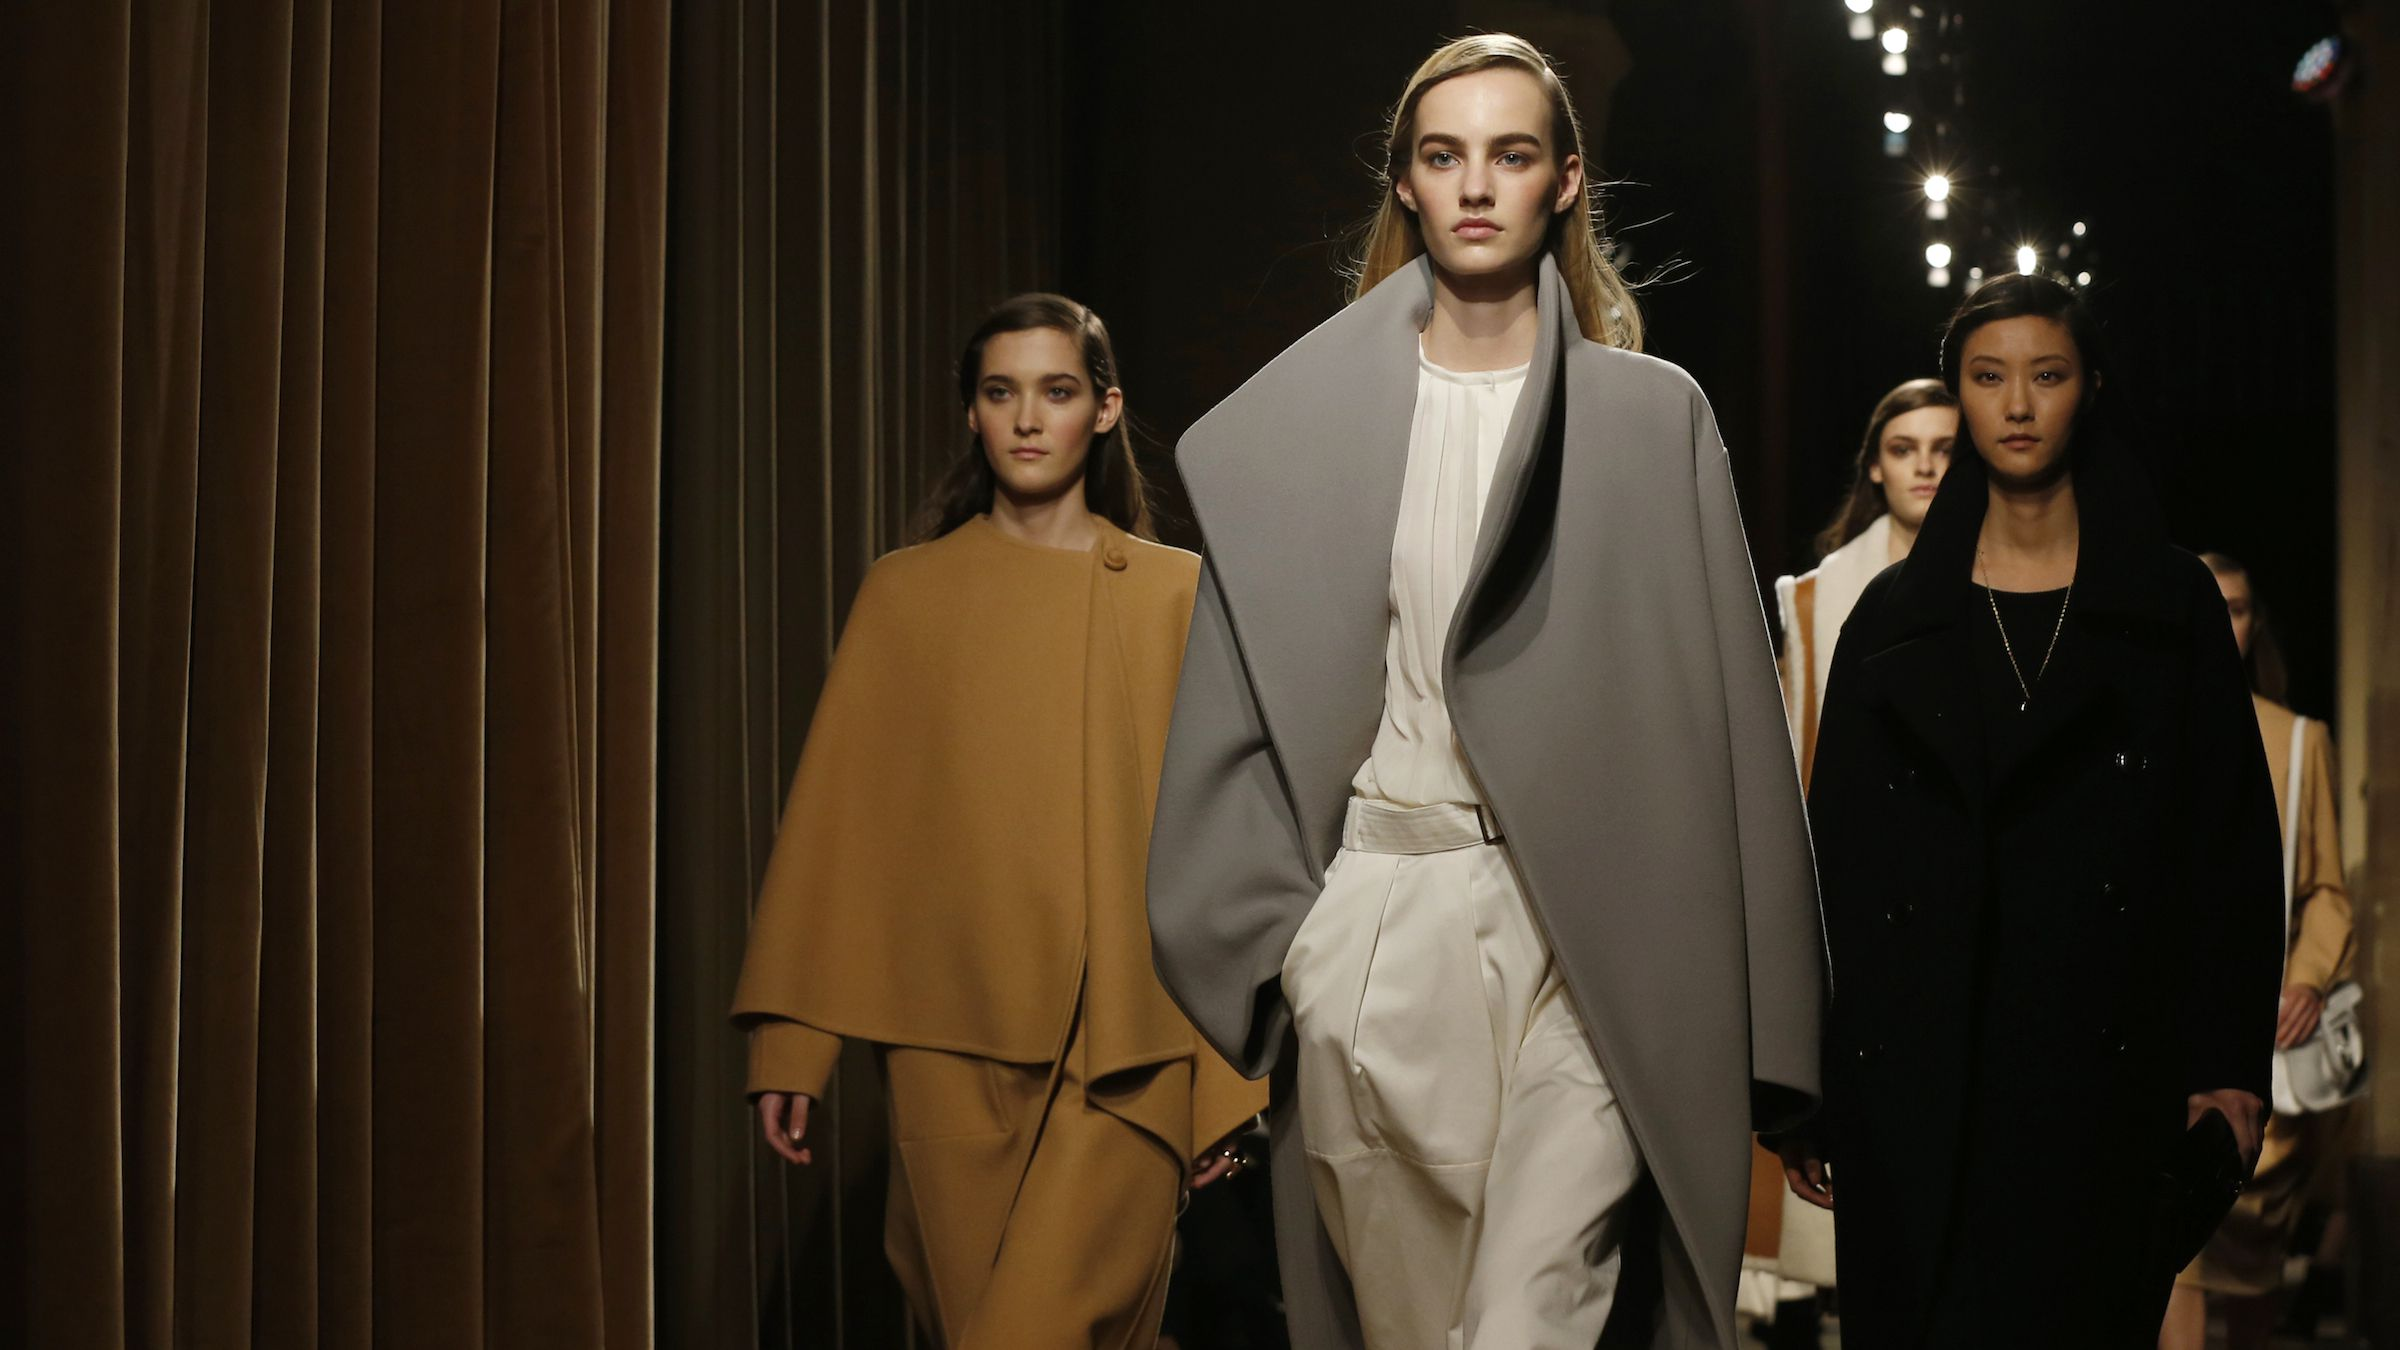 Models present creations by French designer Christophe Lemaire as part of his Fall/Winter 2014-2015 women's ready-to-wear collection for fashion house Hermes during Paris Fashion Week